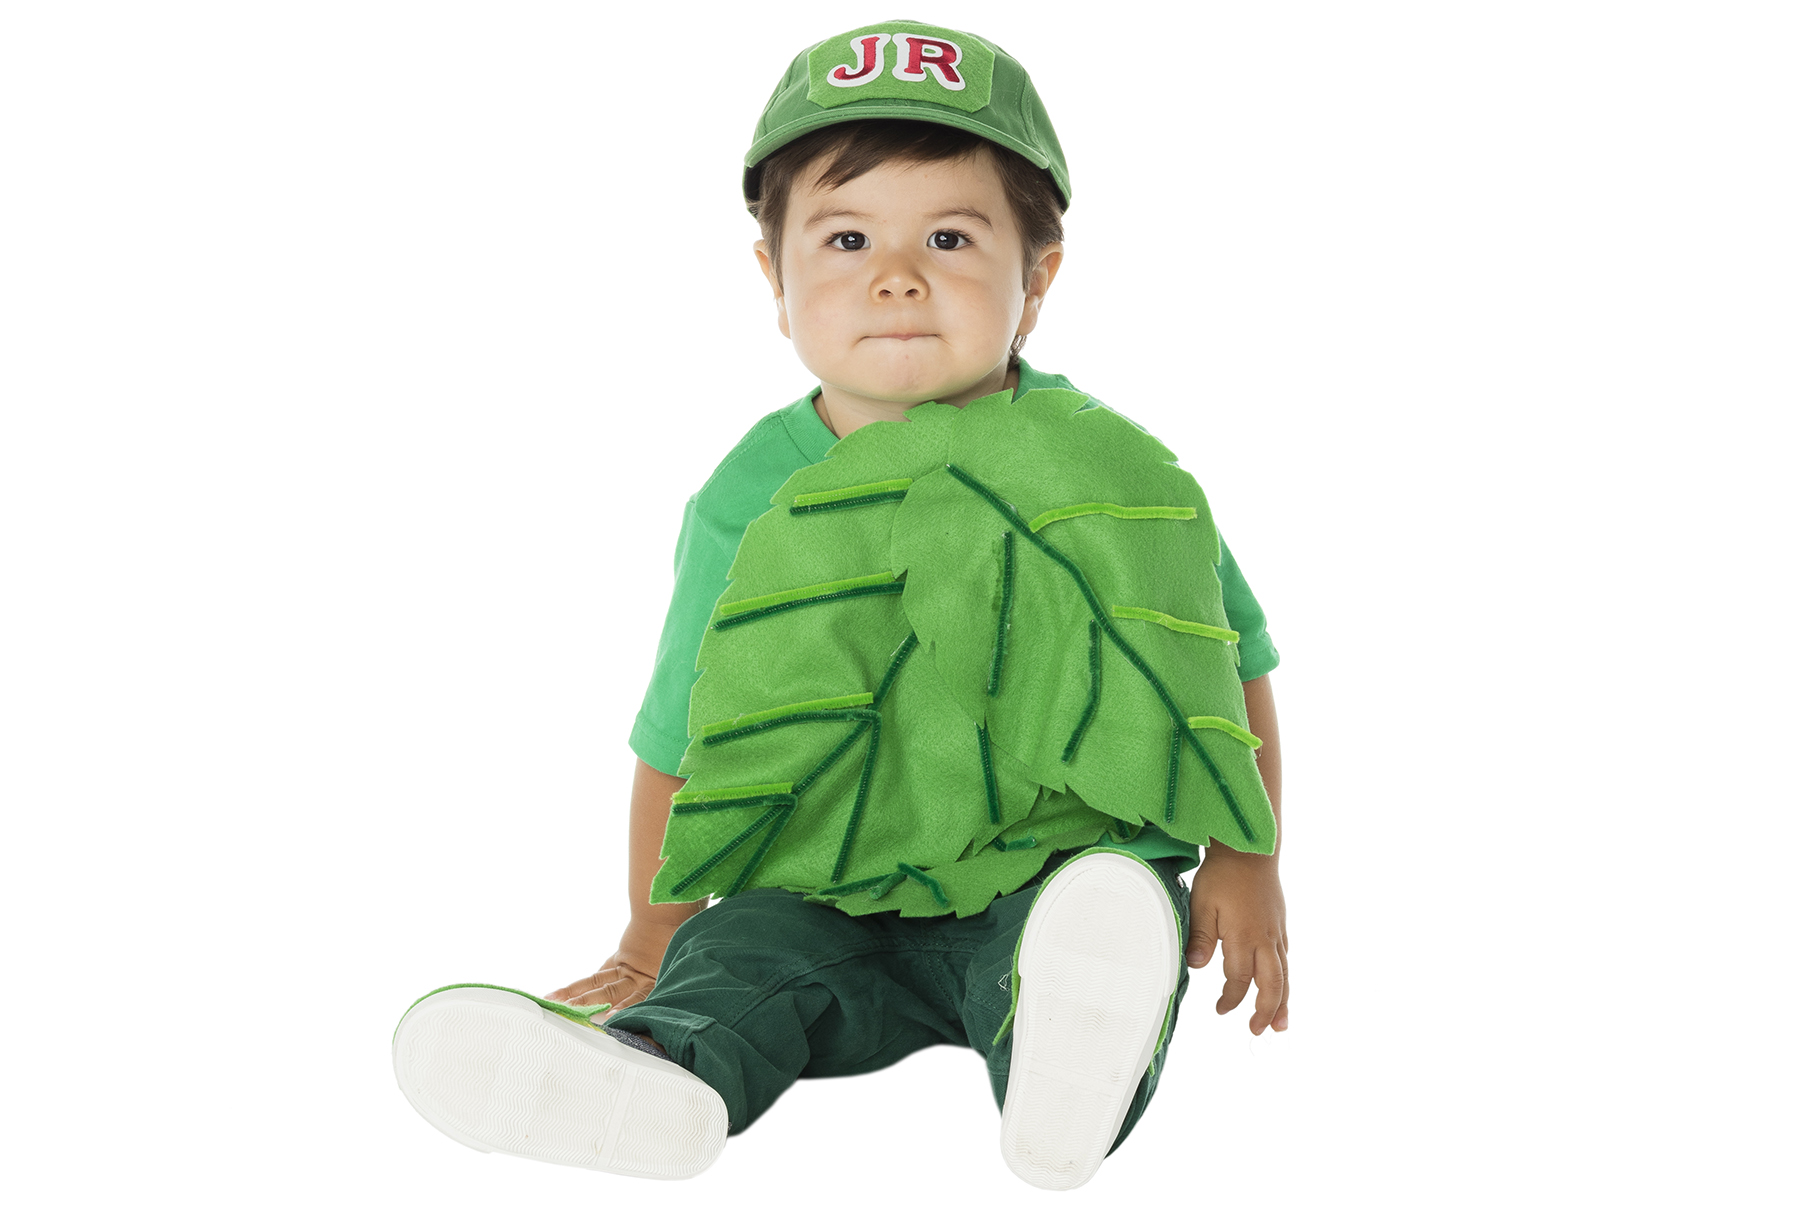 DIY Halloween costumes - Junior Mint Costume